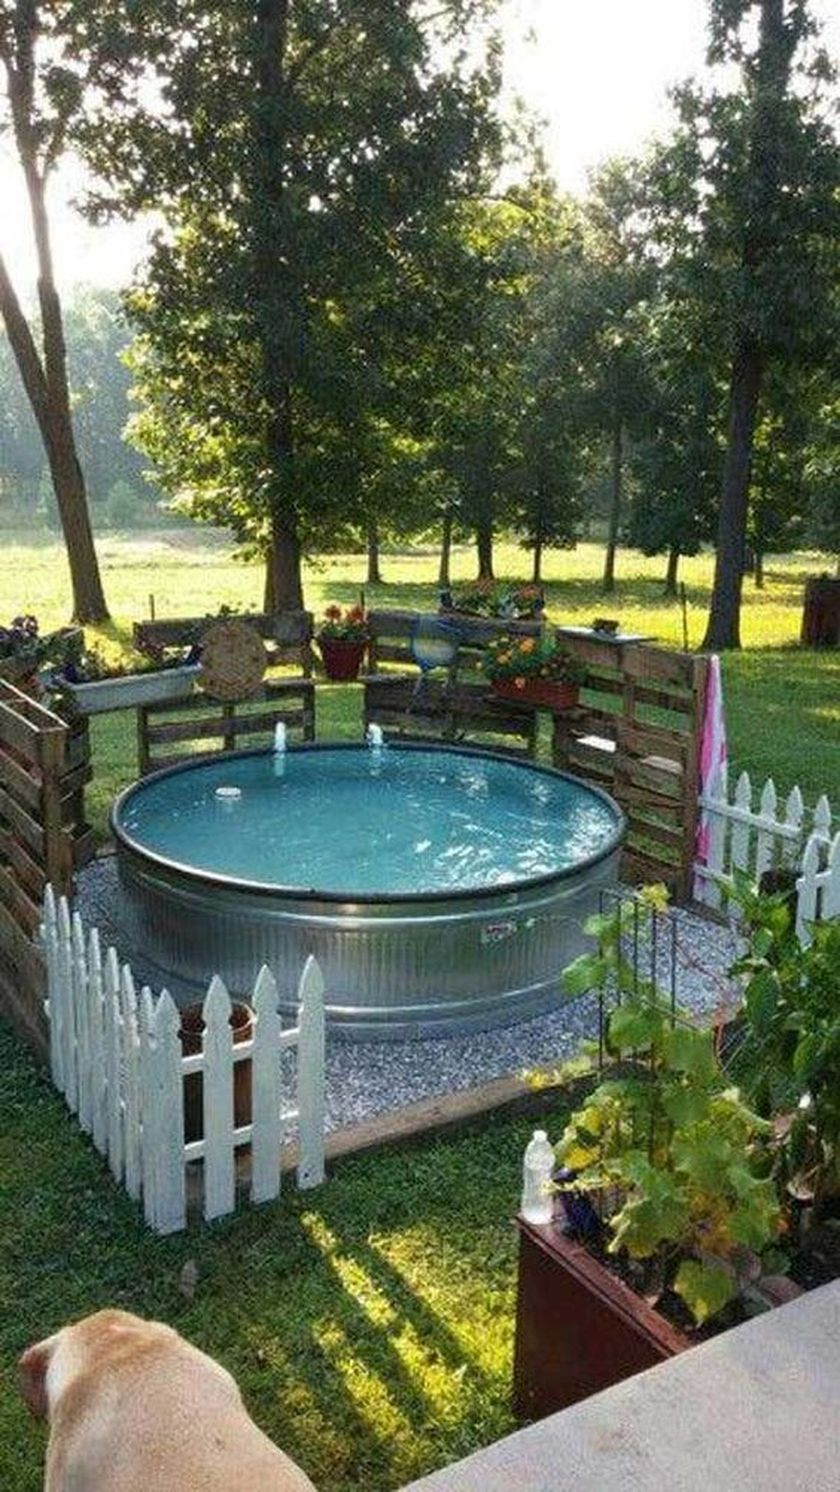 60 Fabulous Natural Small Pool Design Ideas To Copy On Your Backyard pertaining to 14 Clever Tricks of How to Improve Backyard Summer Ideas